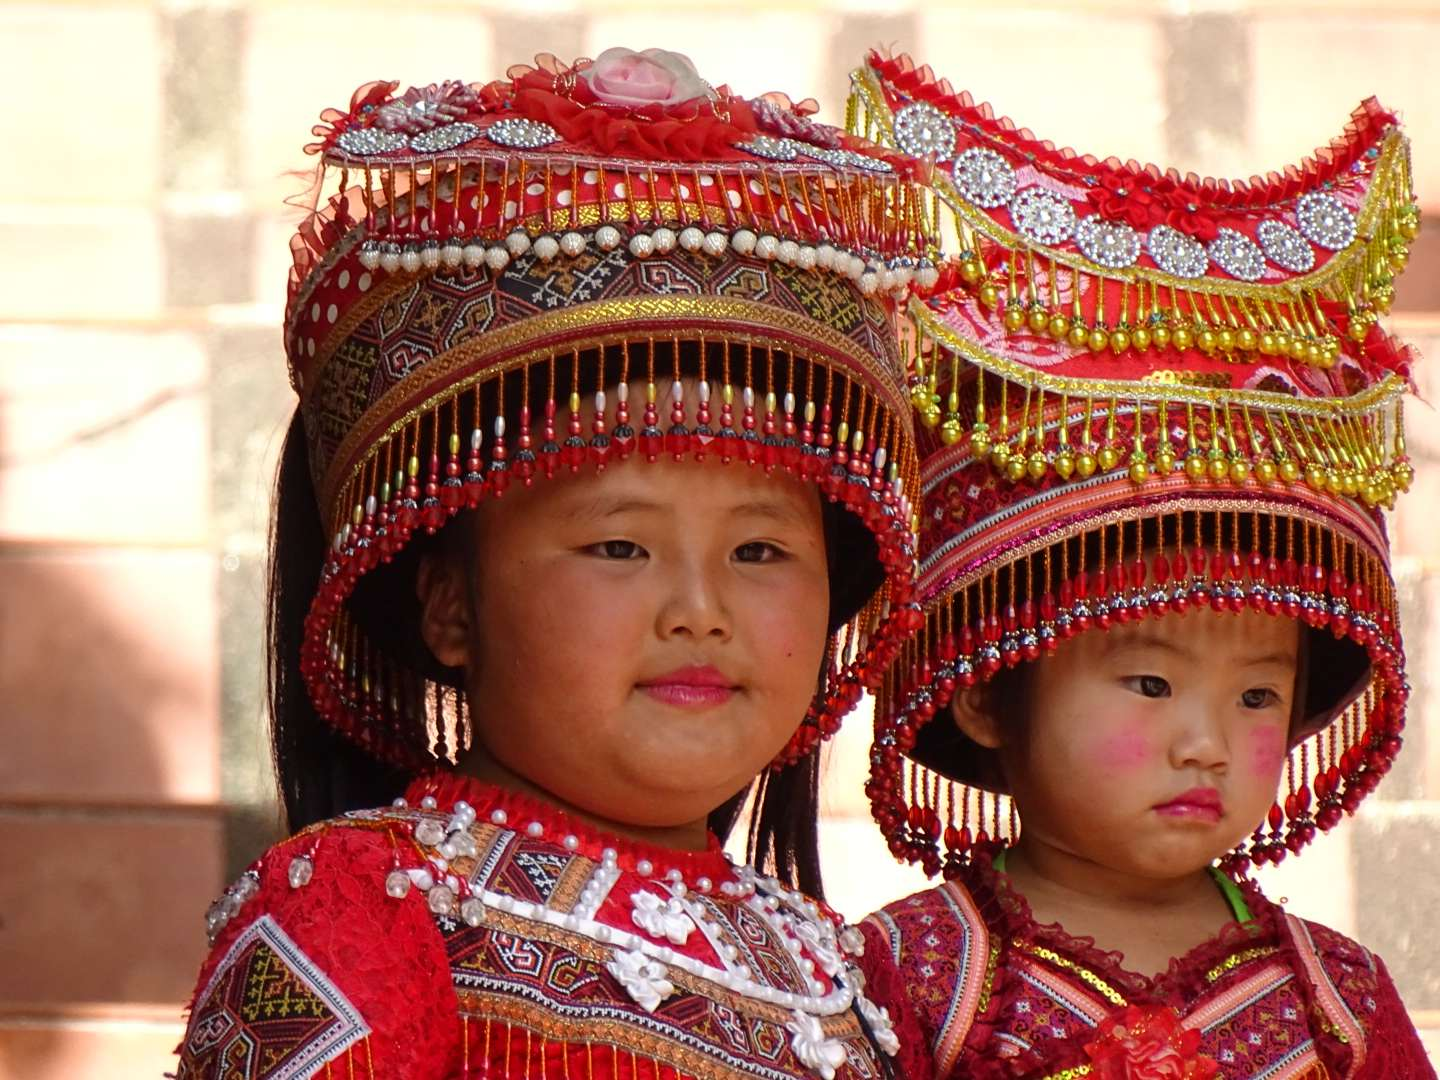 Two children in traditional attire at the Doi Wat Suthep temple in Chiang Mai